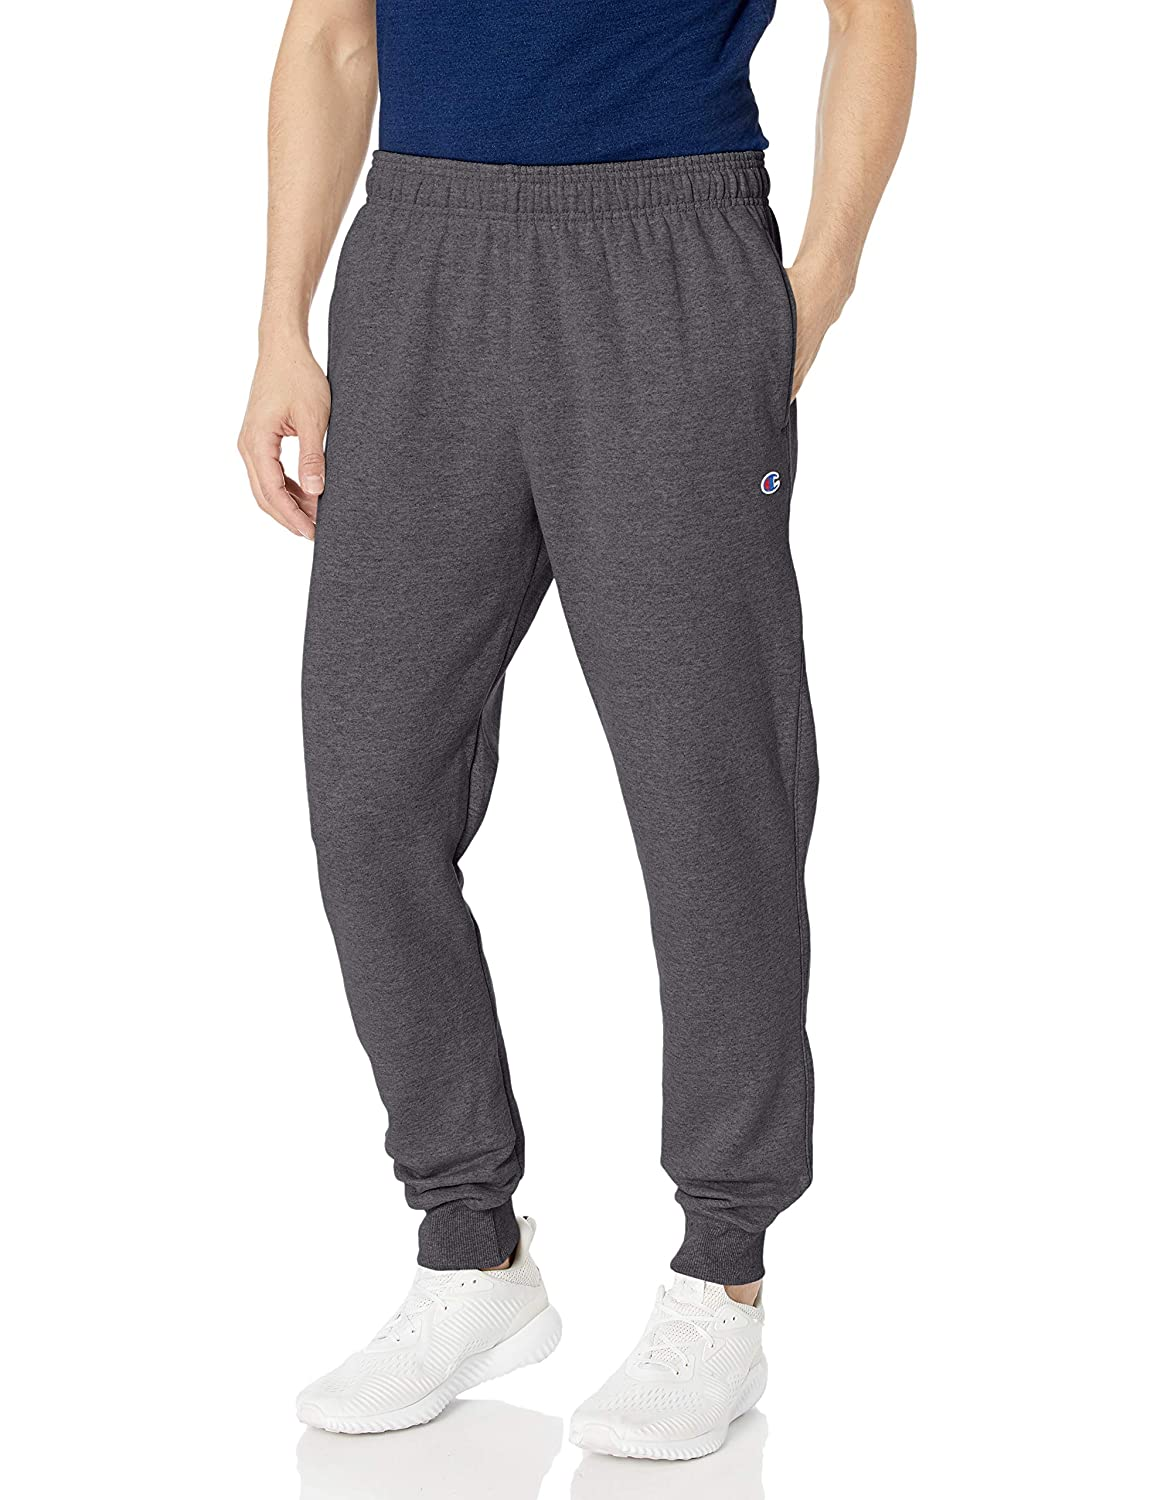 The Best Pants For Home